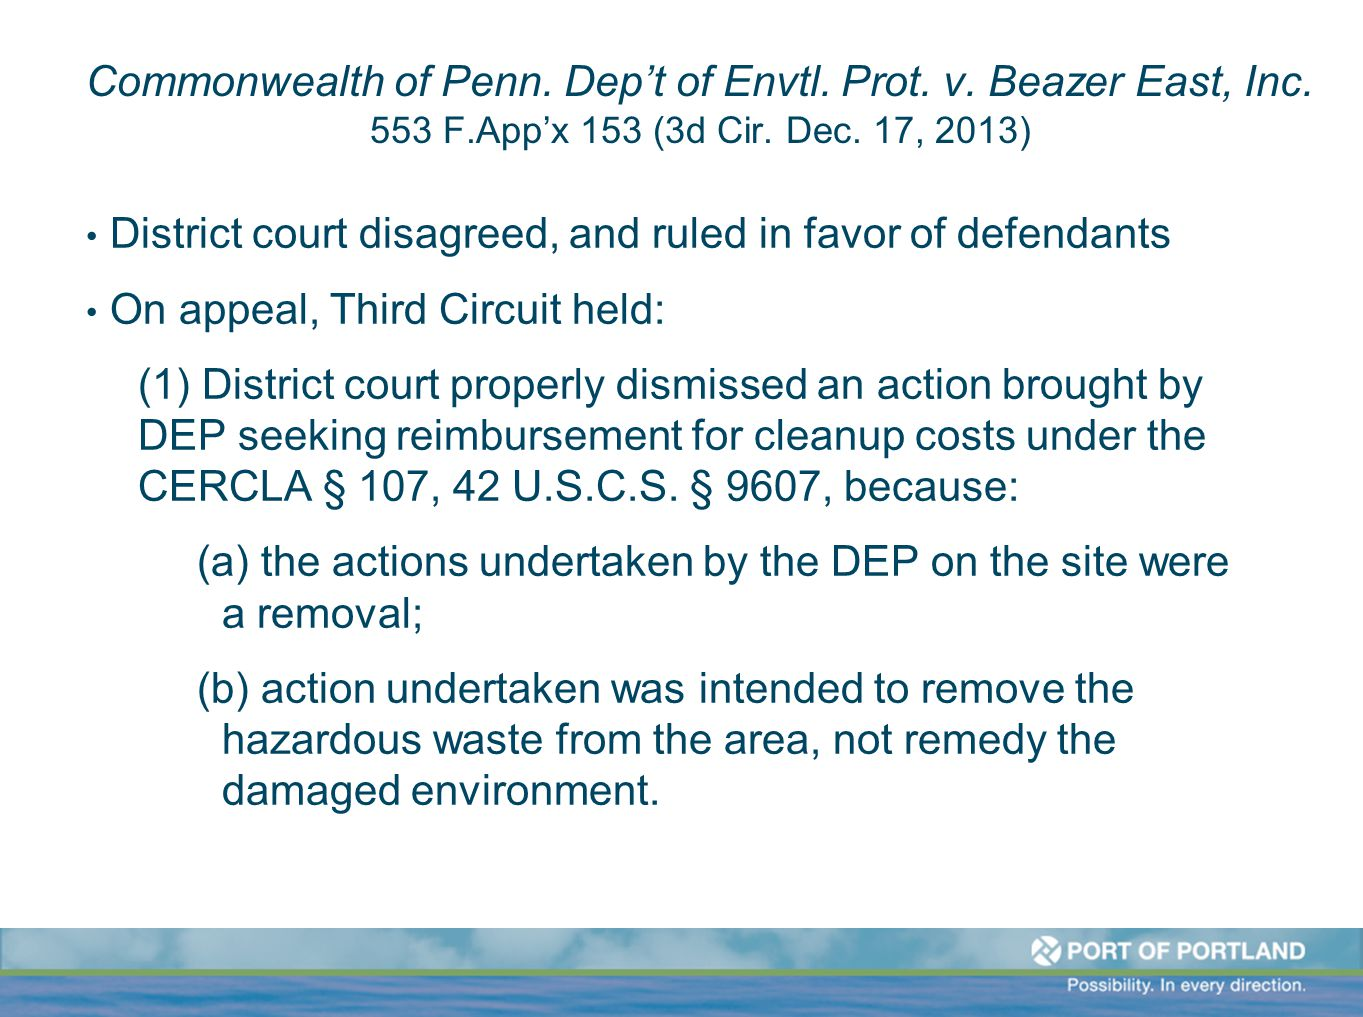 Commonwealth of Penn. Dep't of Envtl. Prot. v. Beazer East, Inc. 553 F.App'x 153 (3d Cir. Dec. 17, 2013) District court disagreed, and ruled in favor